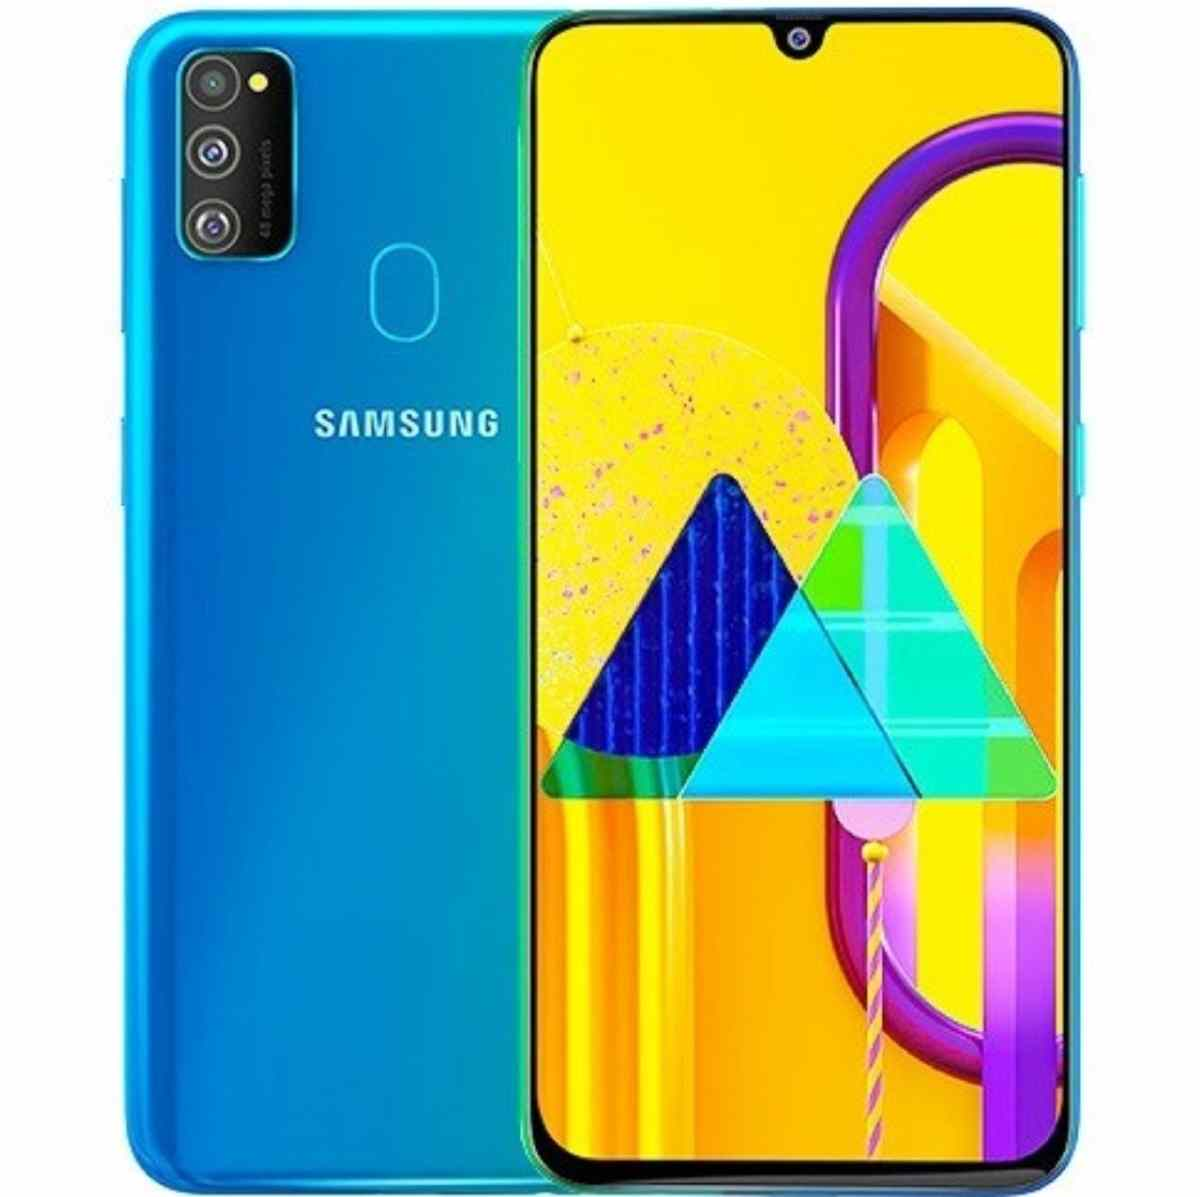 Samsung Galaxy M21 specs and price